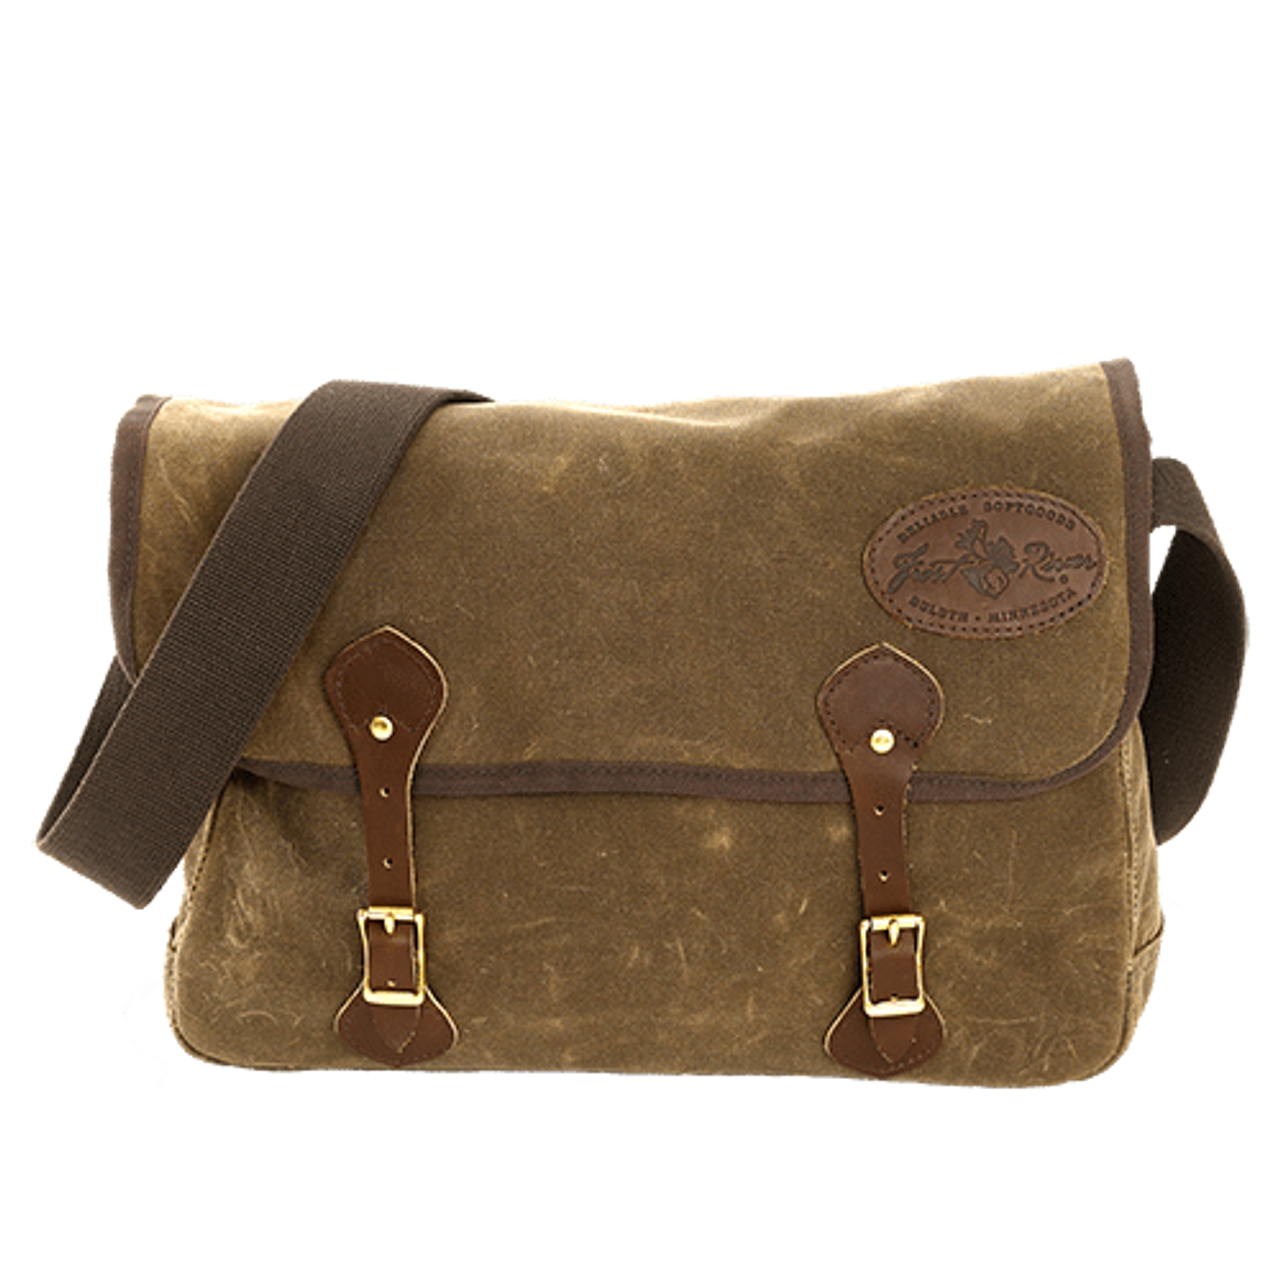 CARRIER BRIEF MESSENGER BAG